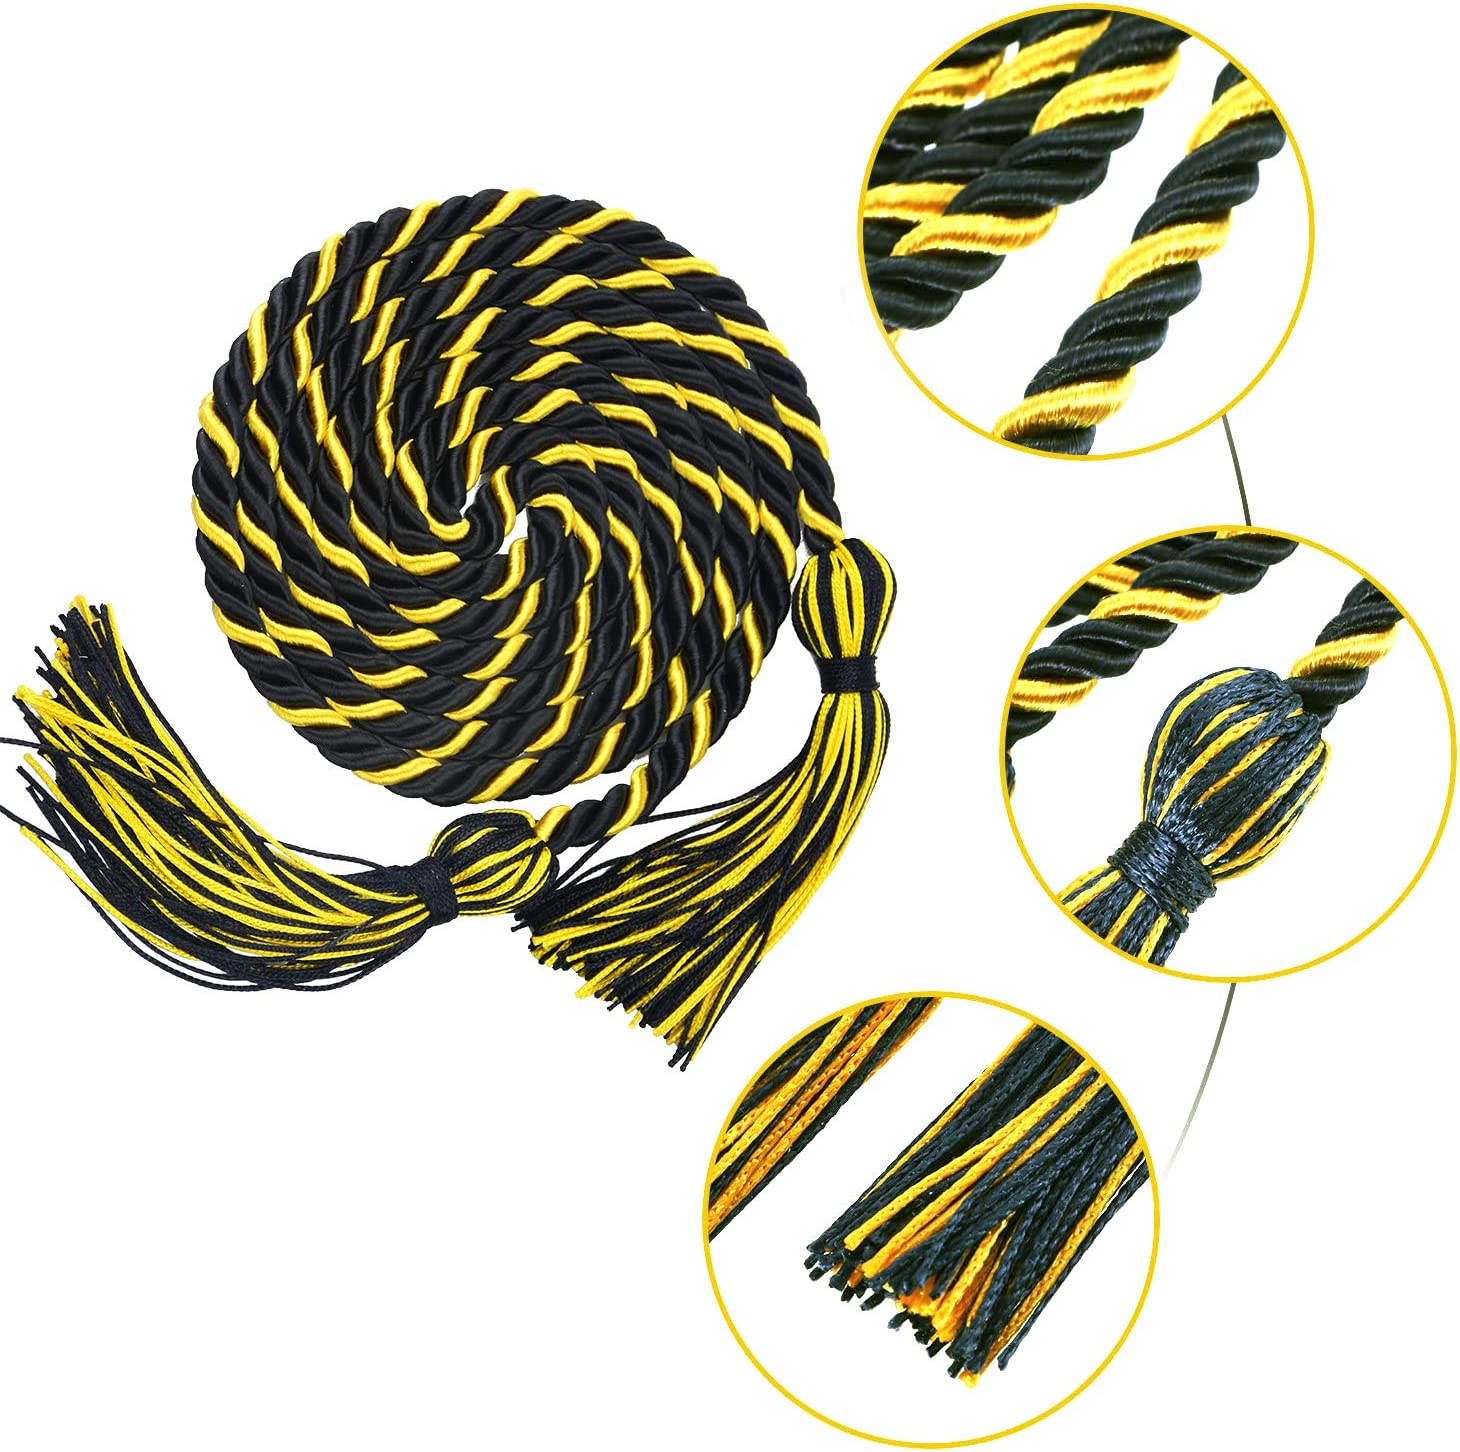 Black/&Gold Makhry 2X 67 inches//170cm Handmade Graduation Honor Cord Tassel with Double Cord for Women//Kid Home Decor Tassels Wedding Favor